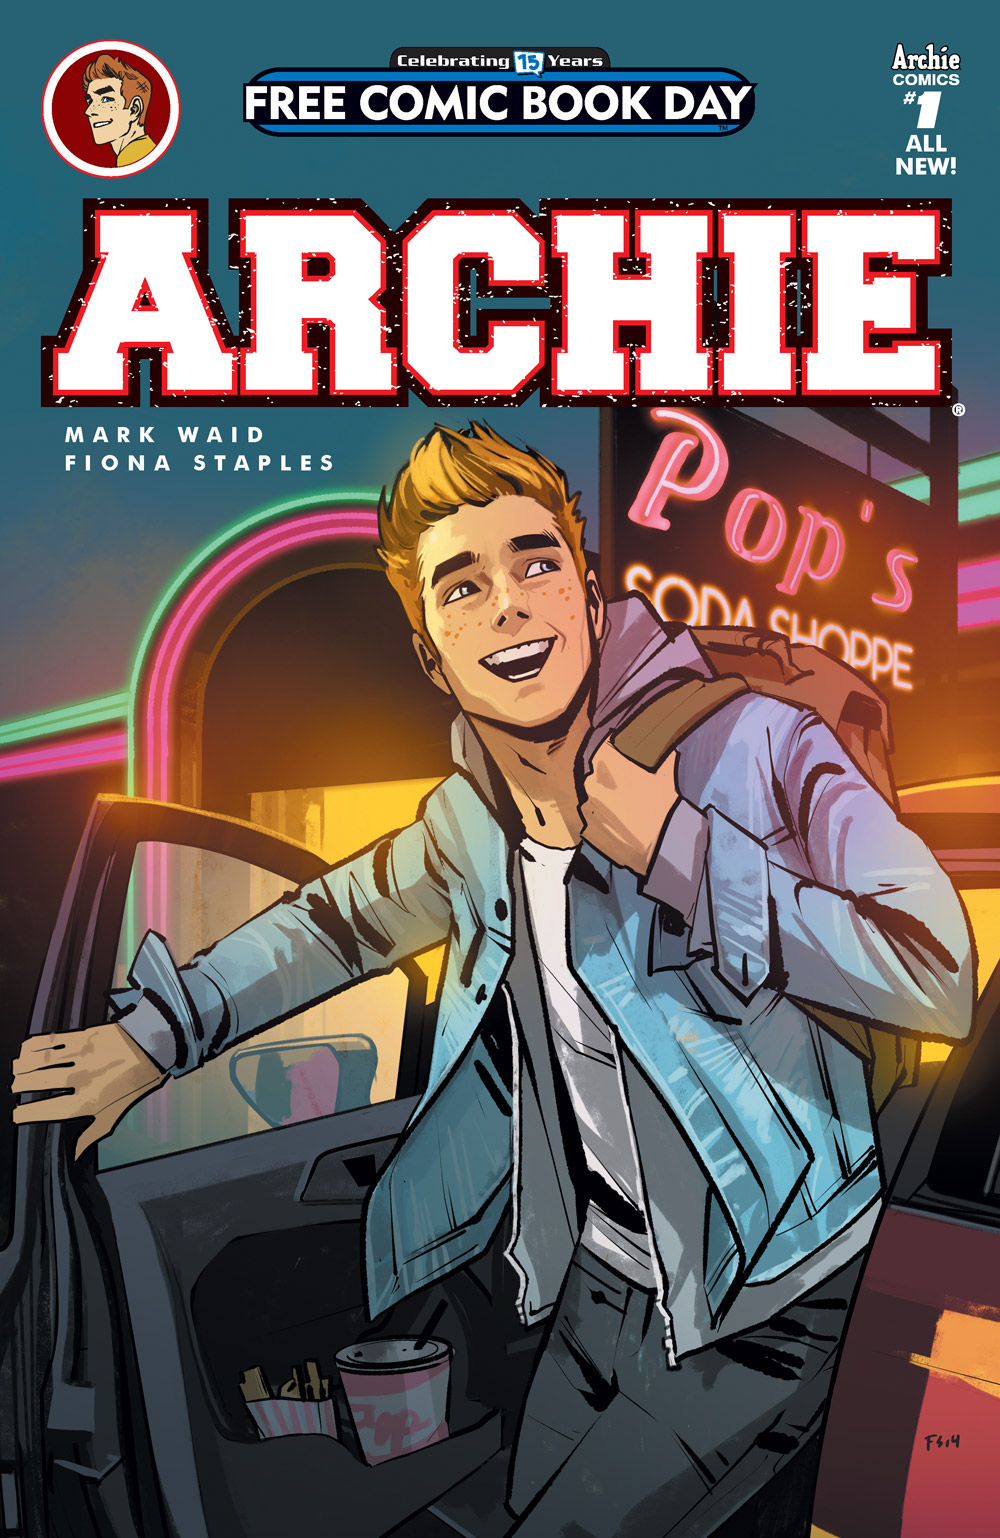 Modern Book Cover Generator : Archie comics offers a first look inside free comic book